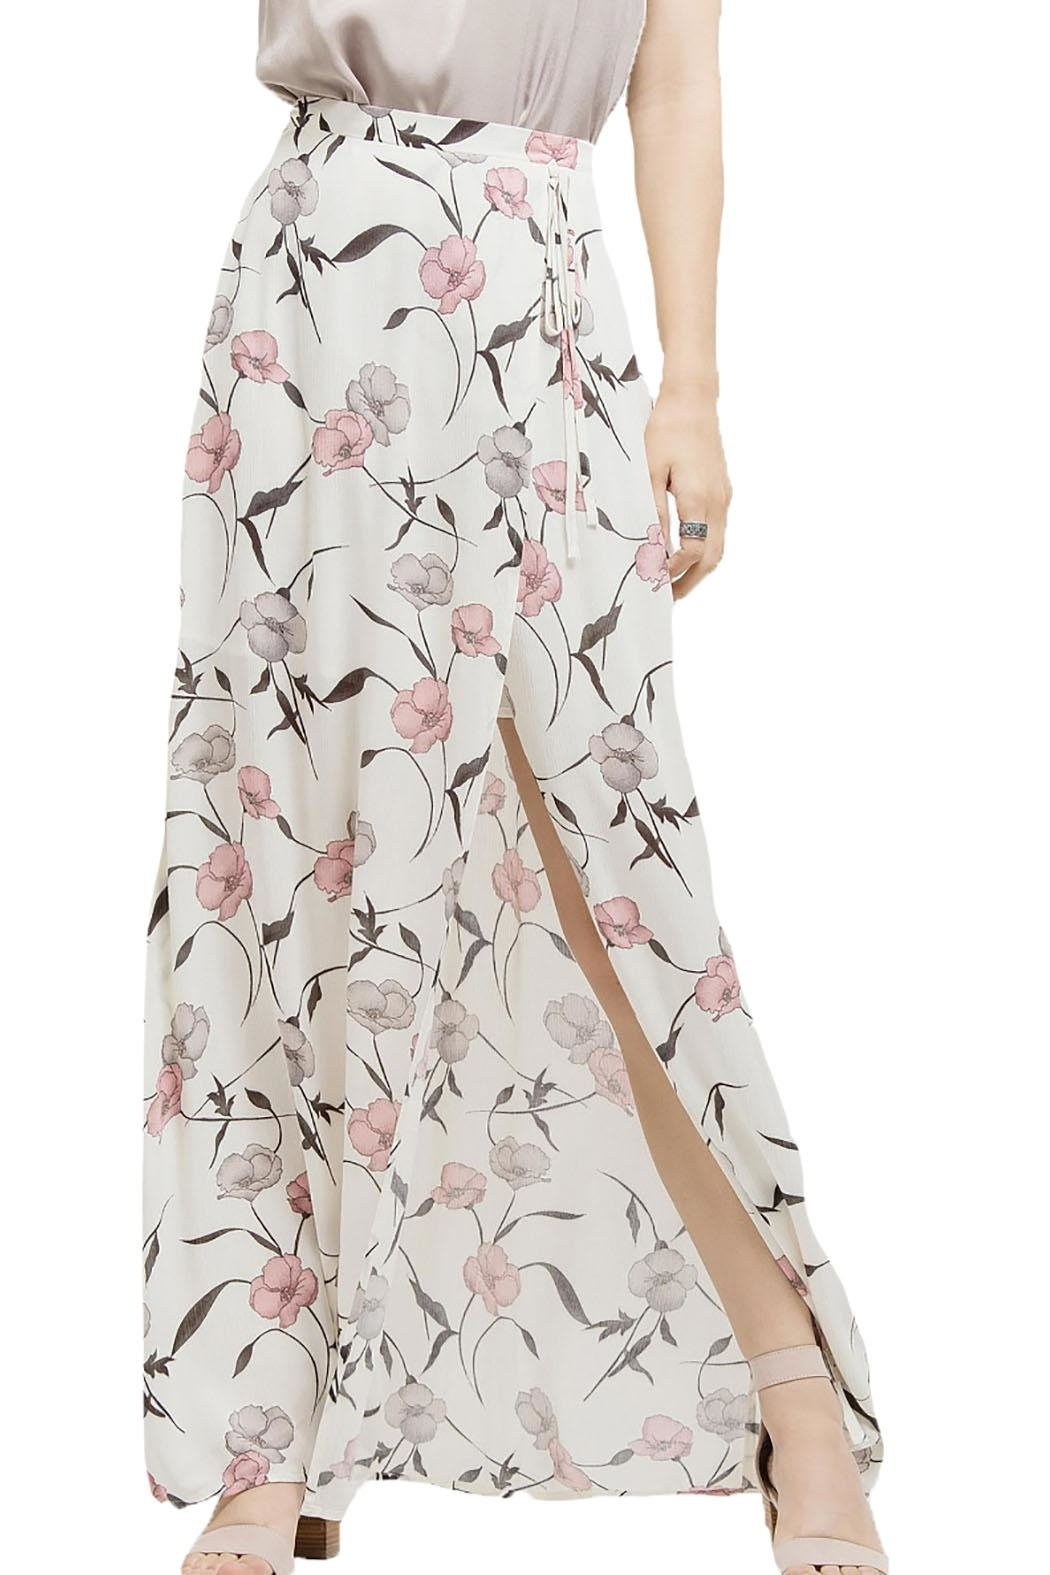 Blu Pepper Floral Maxi Slit Skirt - Main Image